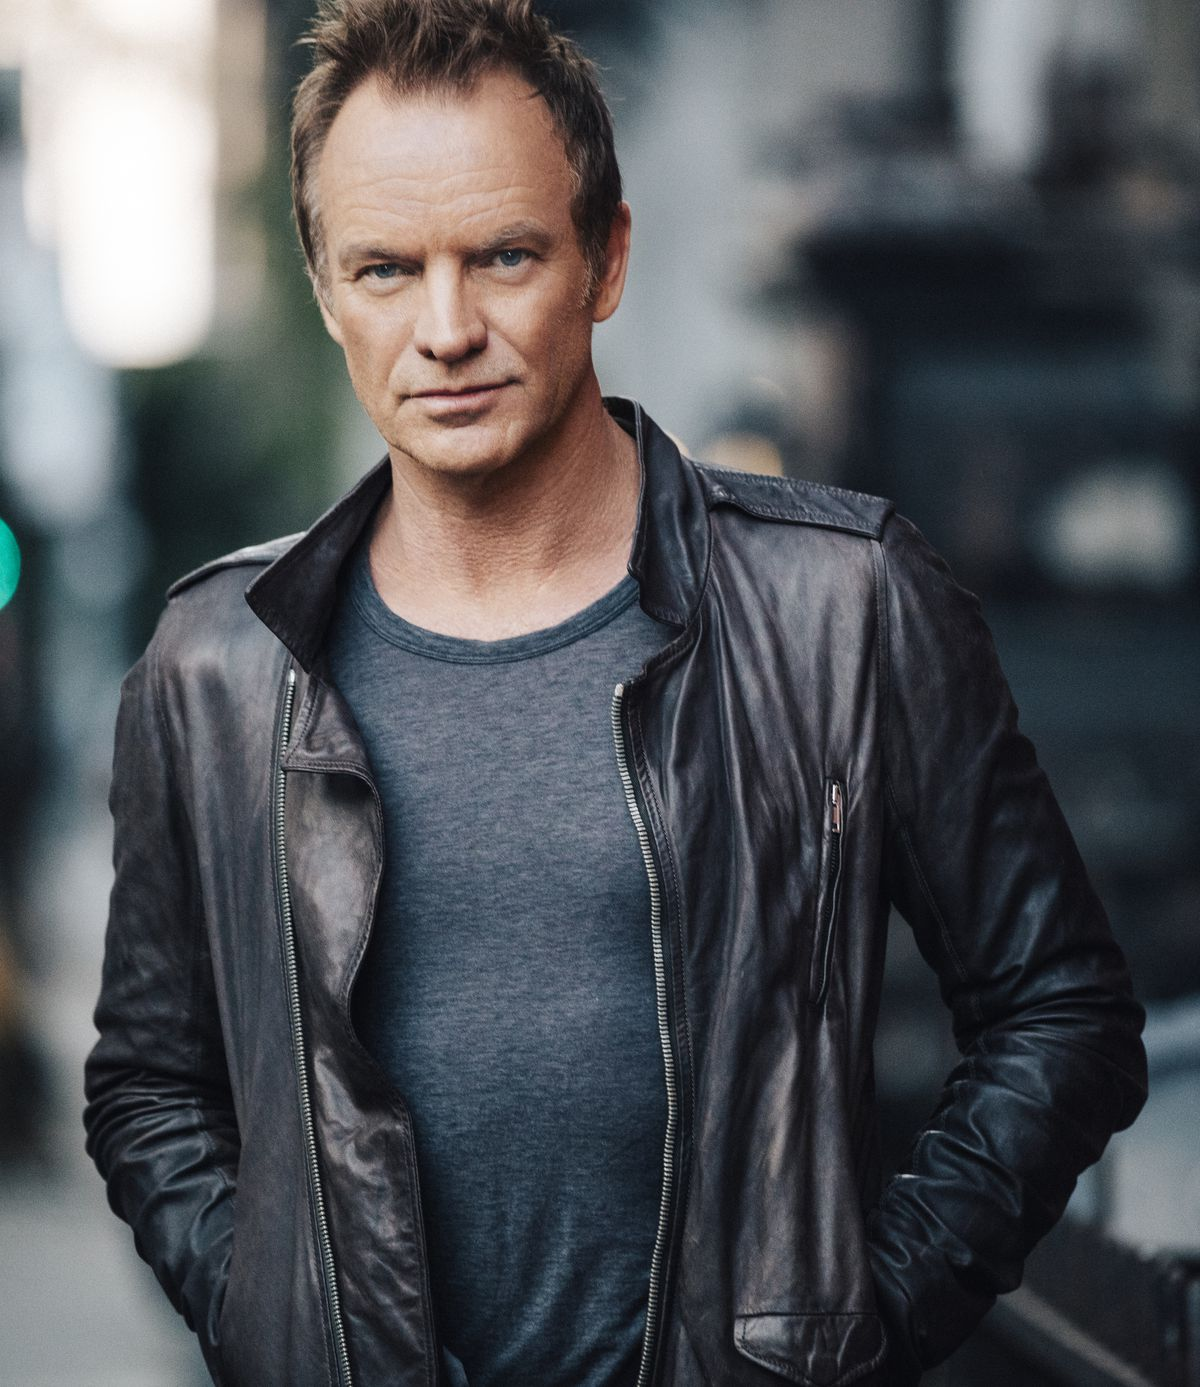 Sting will perform with the Utah Symphony on Aug. 31 as part of a centennial celebration for Zion National Park.